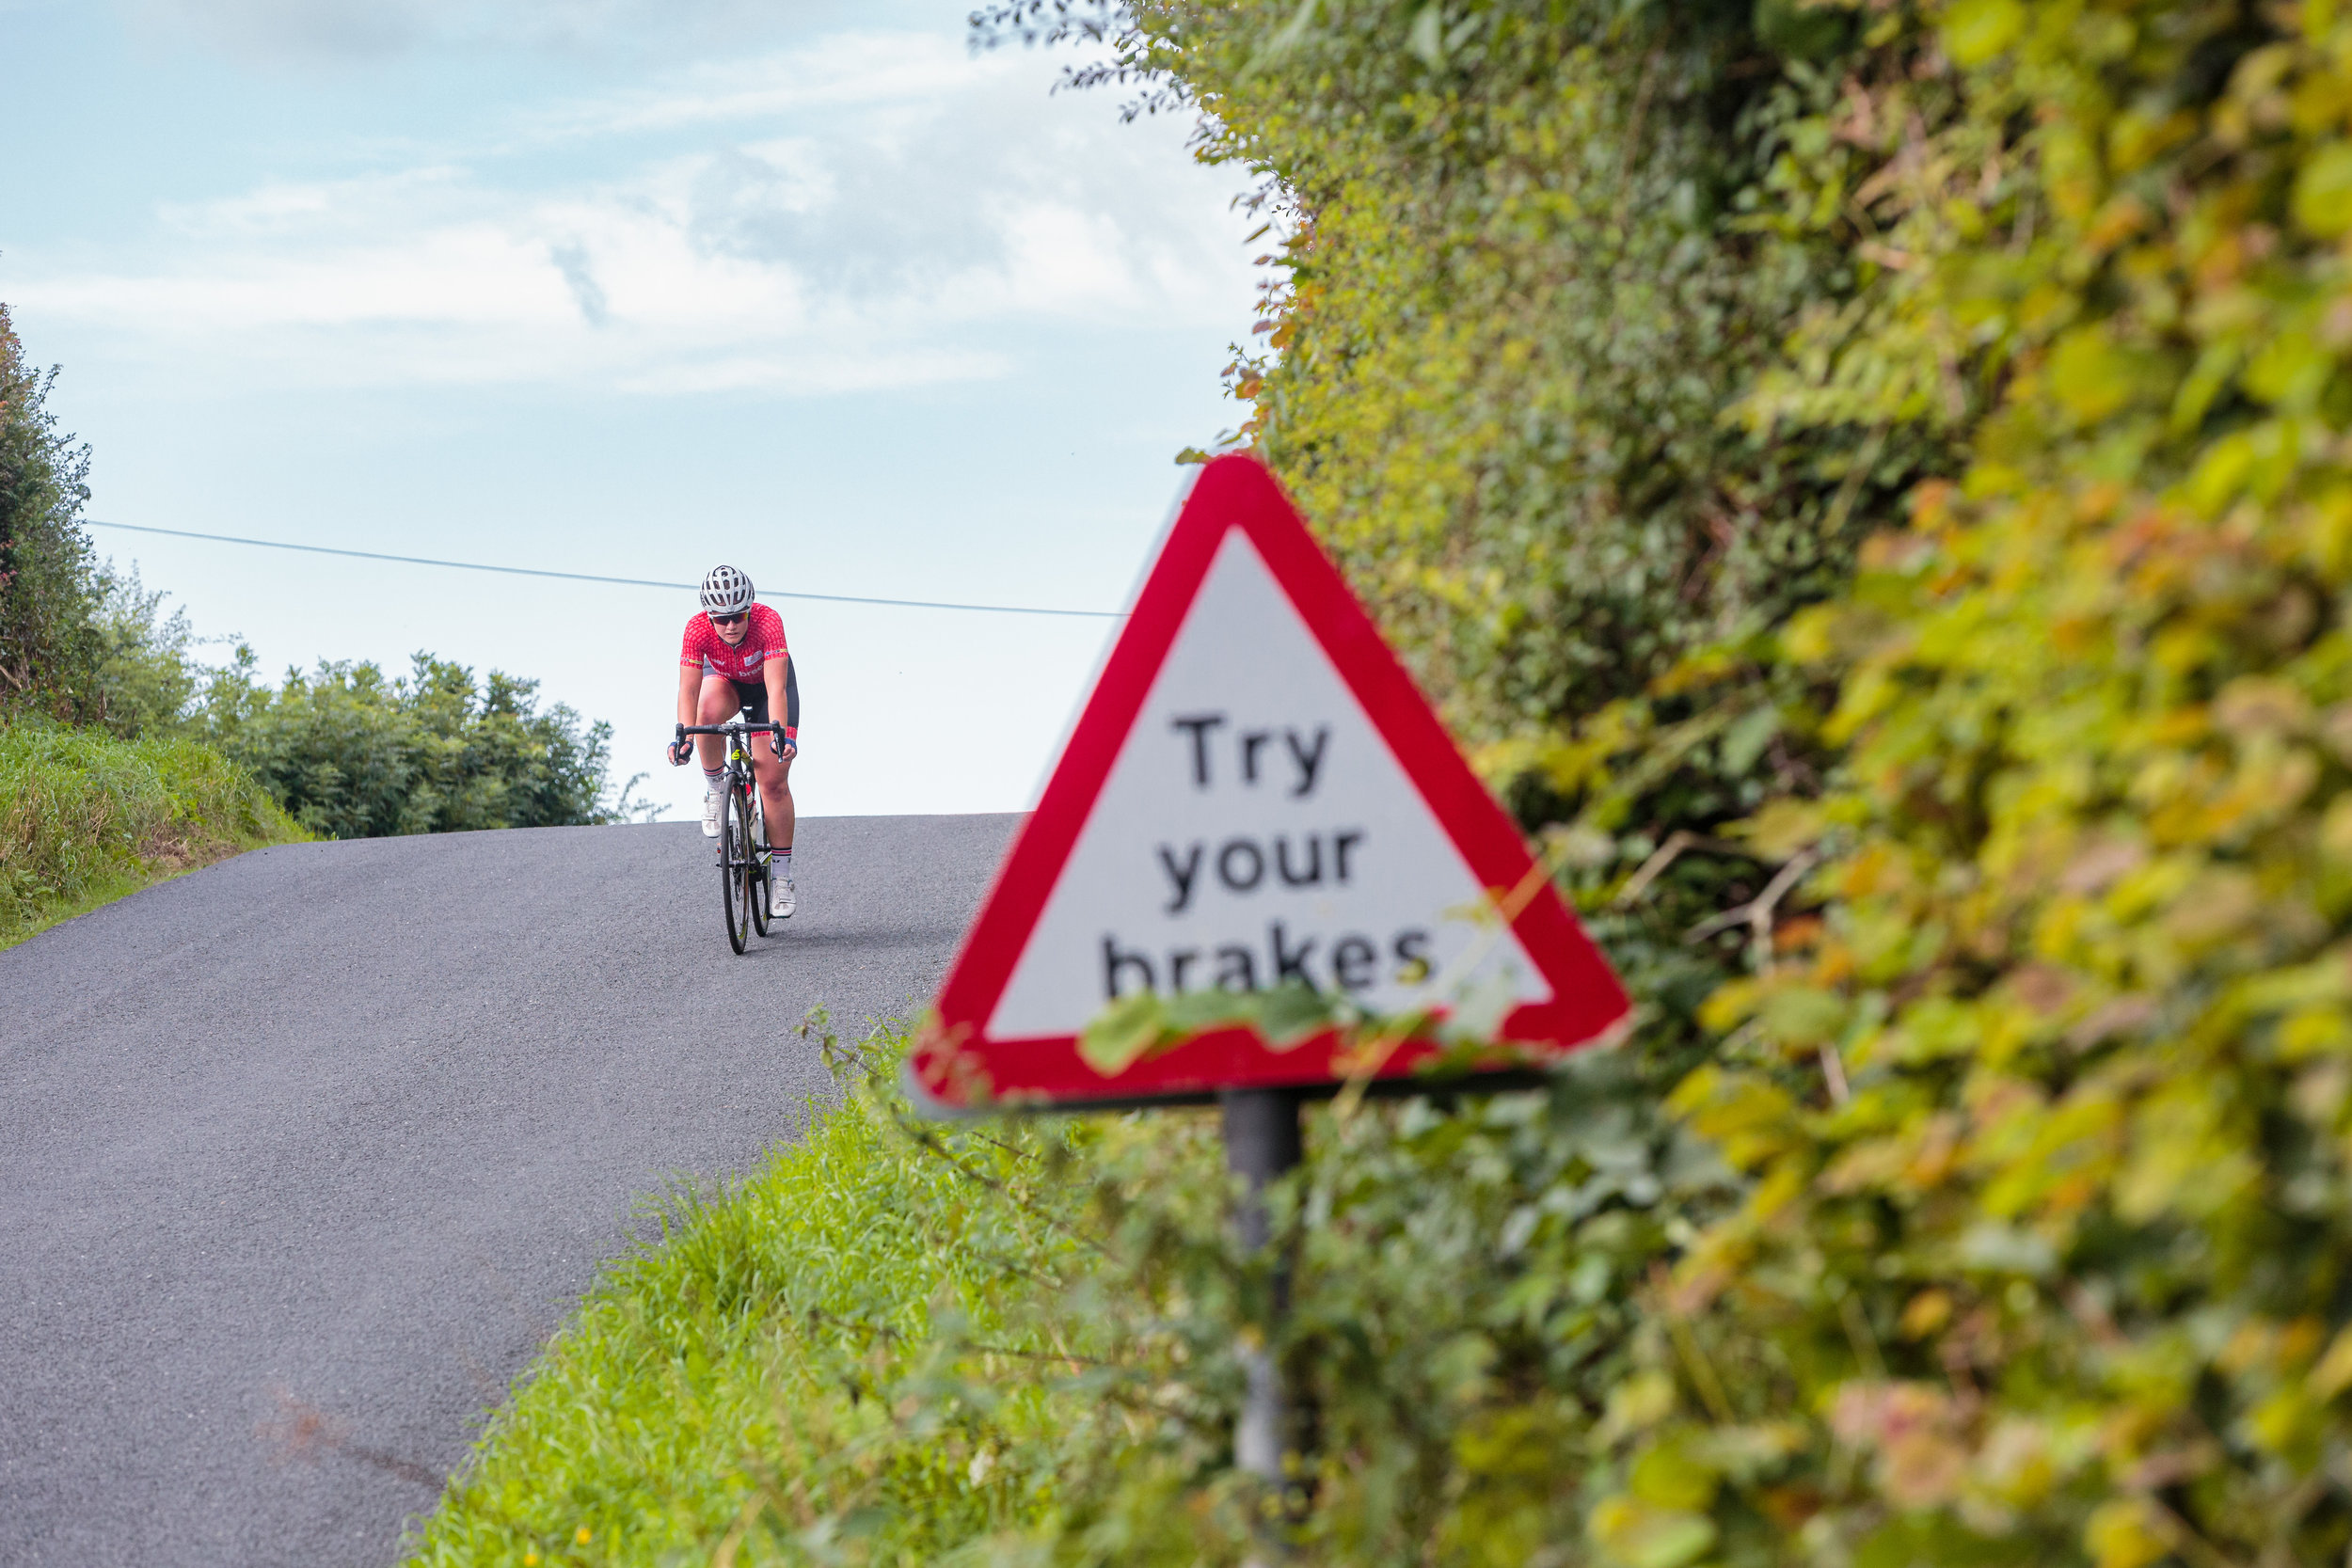 Cyclist Advice: Try Your Brakes